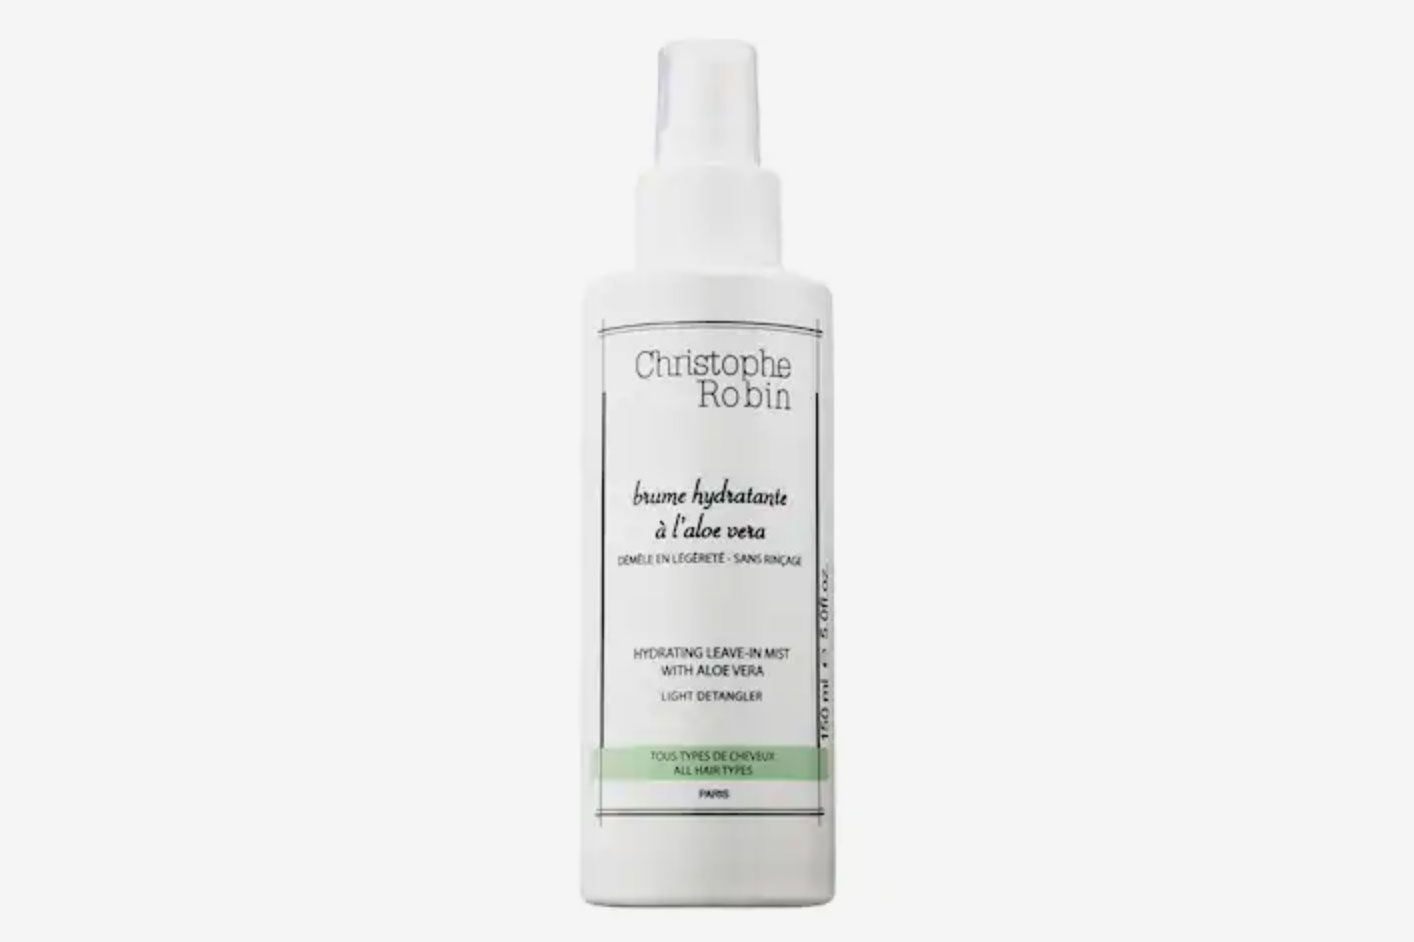 Cristophe Robin Hydrating Leave-In Mist